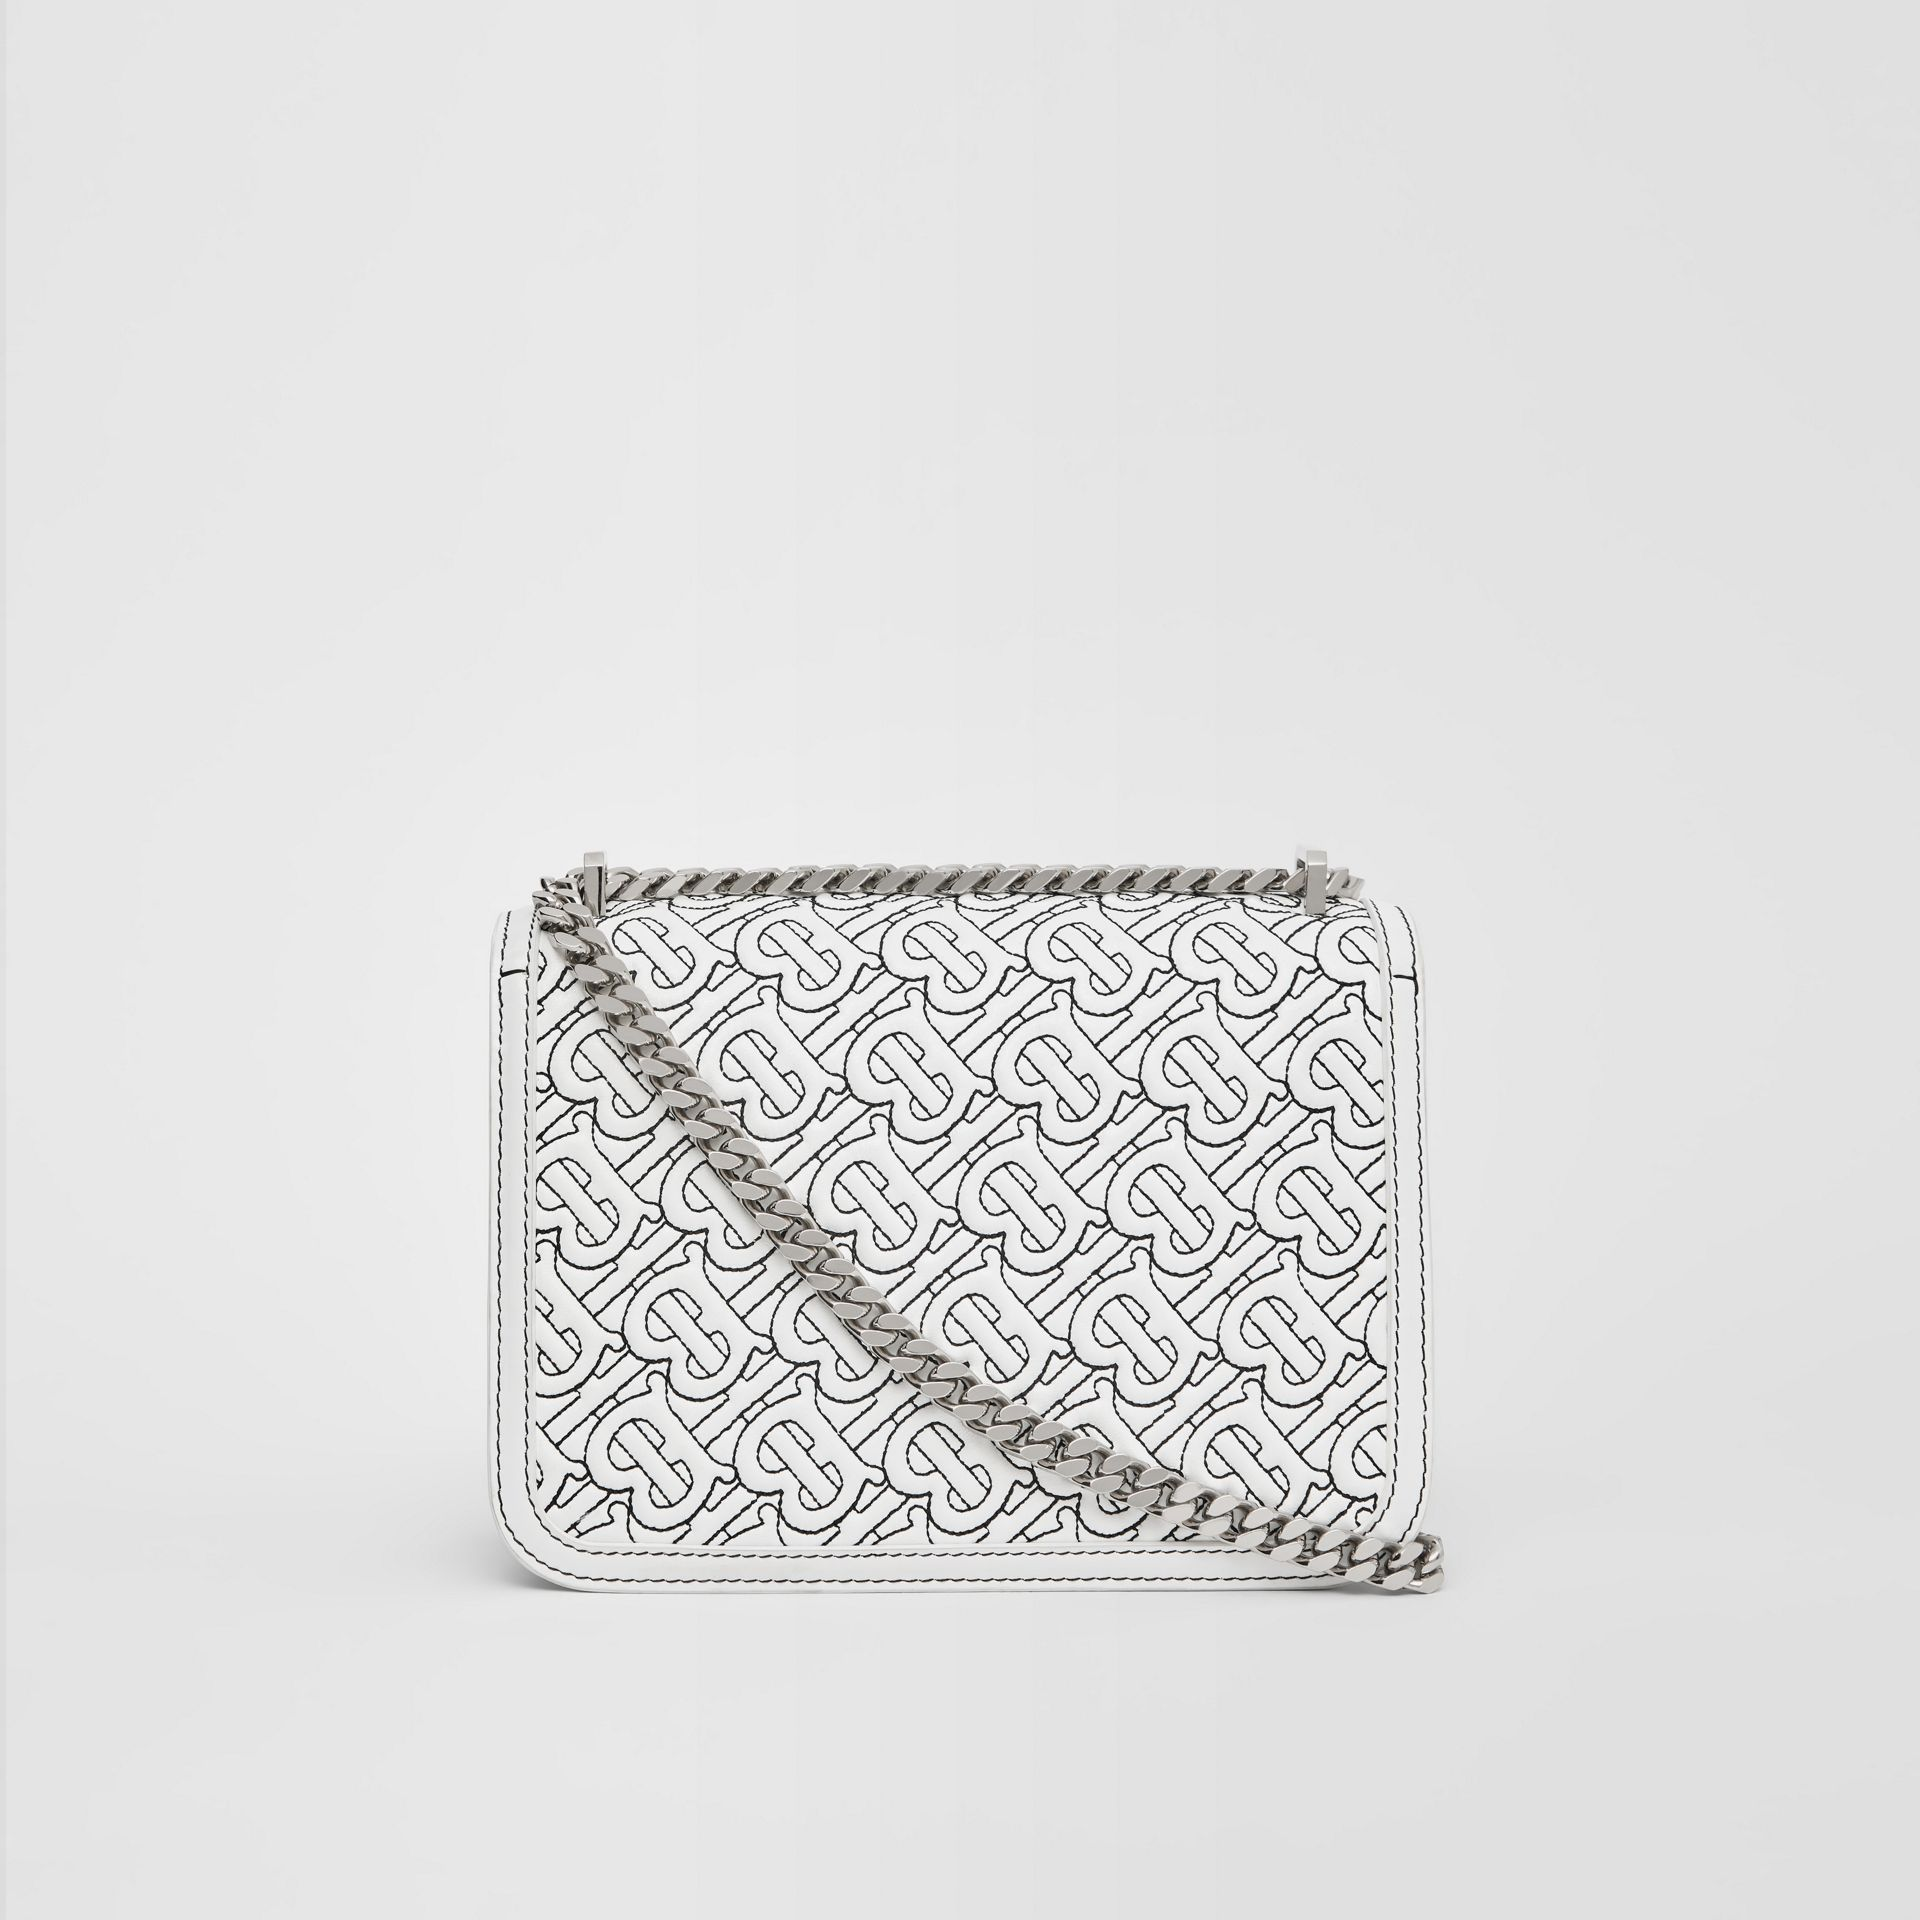 Small Quilted Monogram Lambskin TB Bag in Optic White - Women | Burberry - gallery image 7